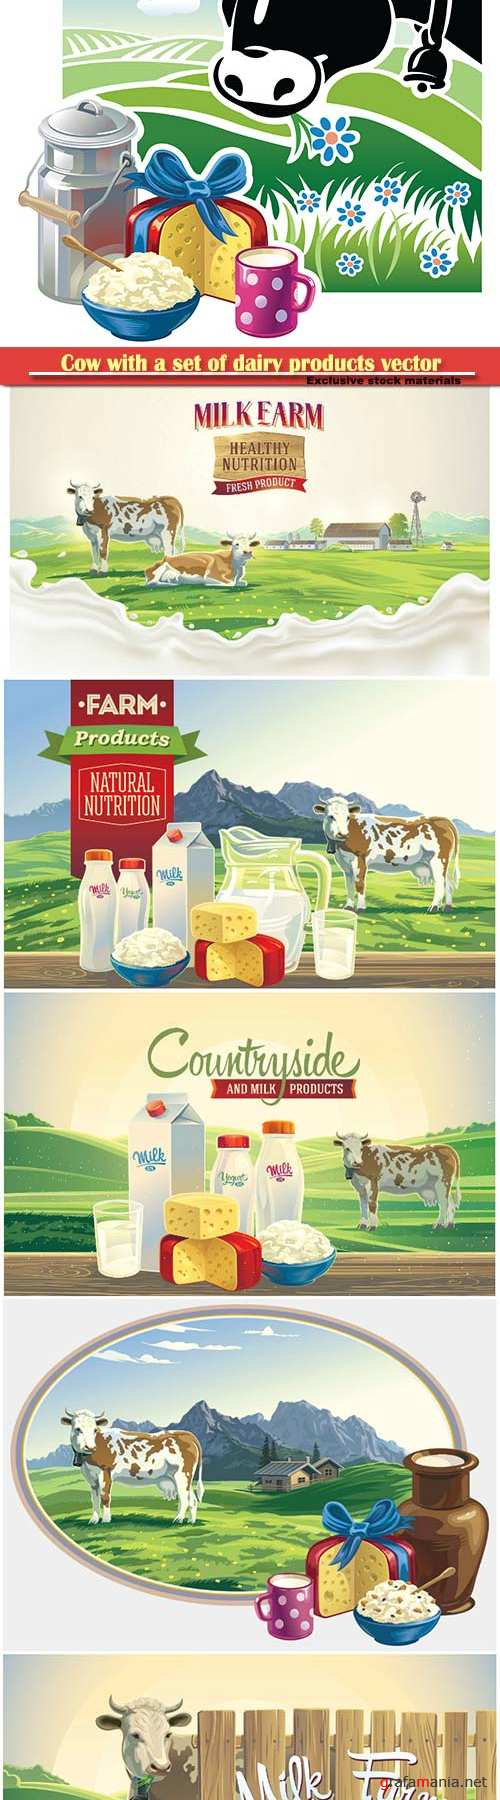 Cow with a set of dairy products vector illustration